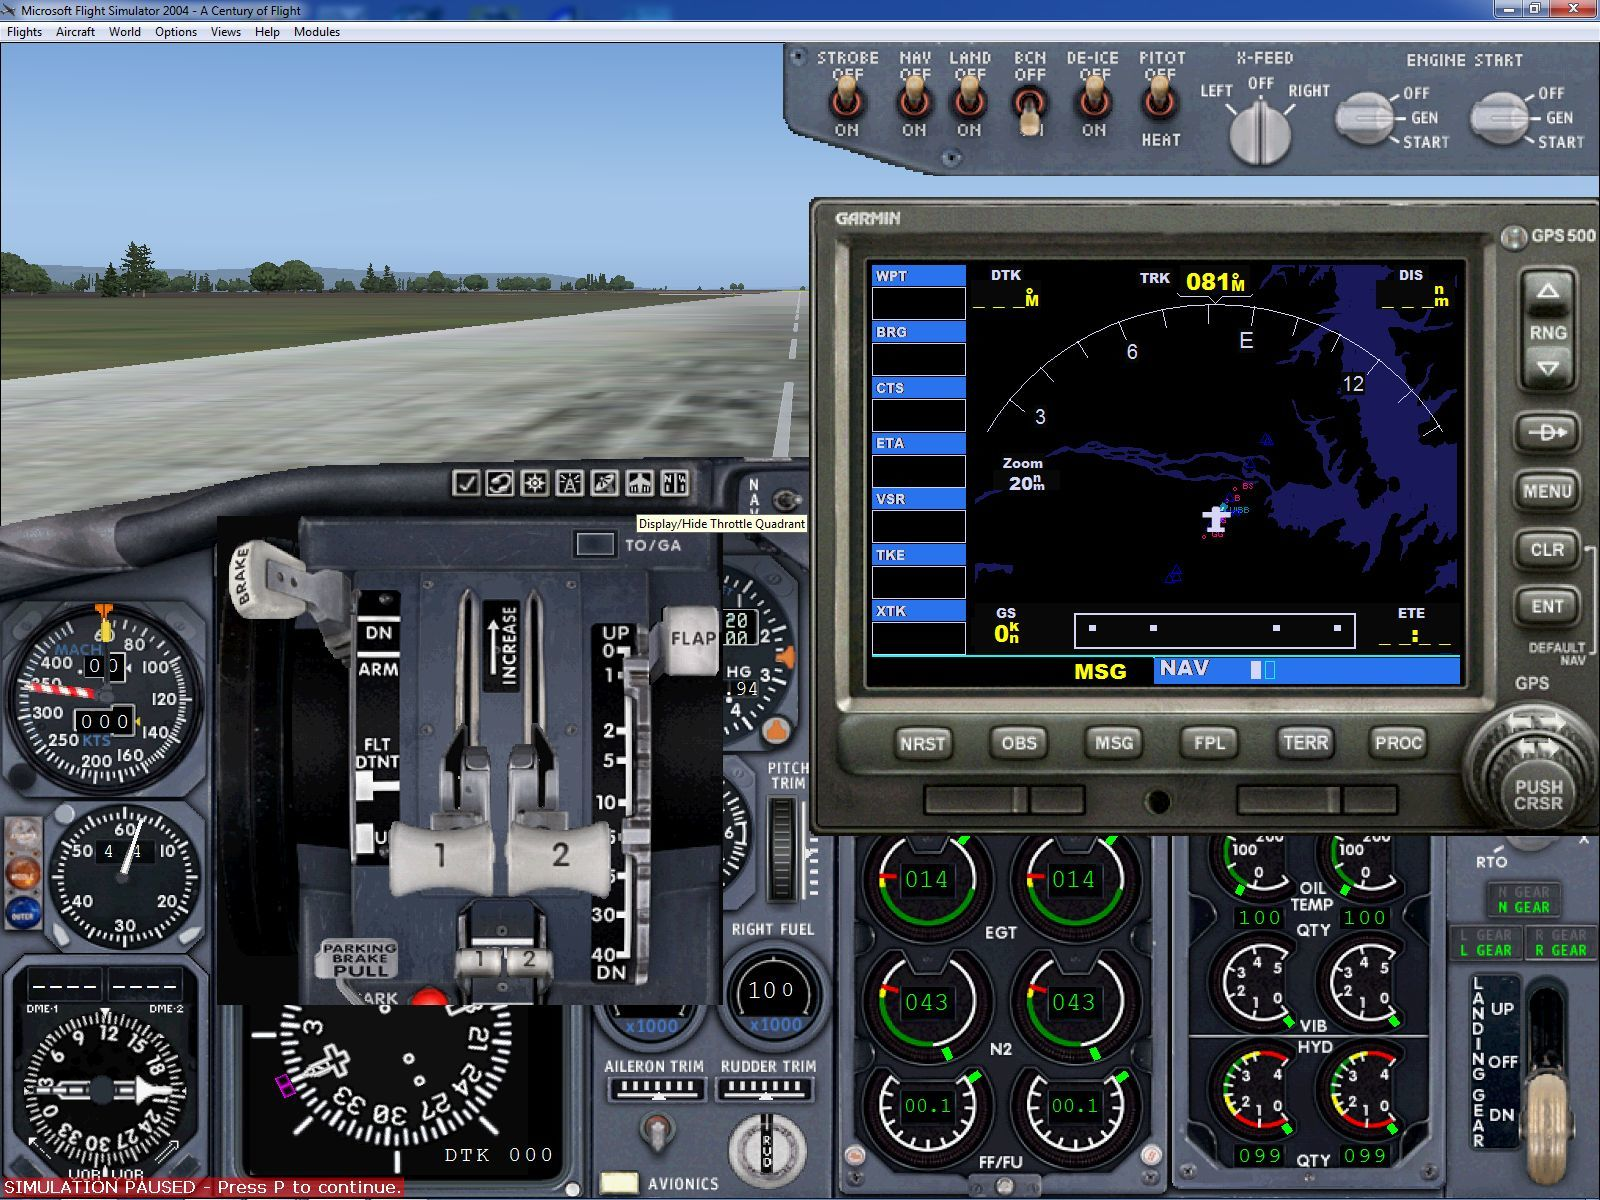 Microsoft Flight Simulator 2004: A Century of Flight Windows Here the icons for the throttles and the GPS have been selected. The player can use the mouse to drag these panels around the screen so that they do not obscure the view